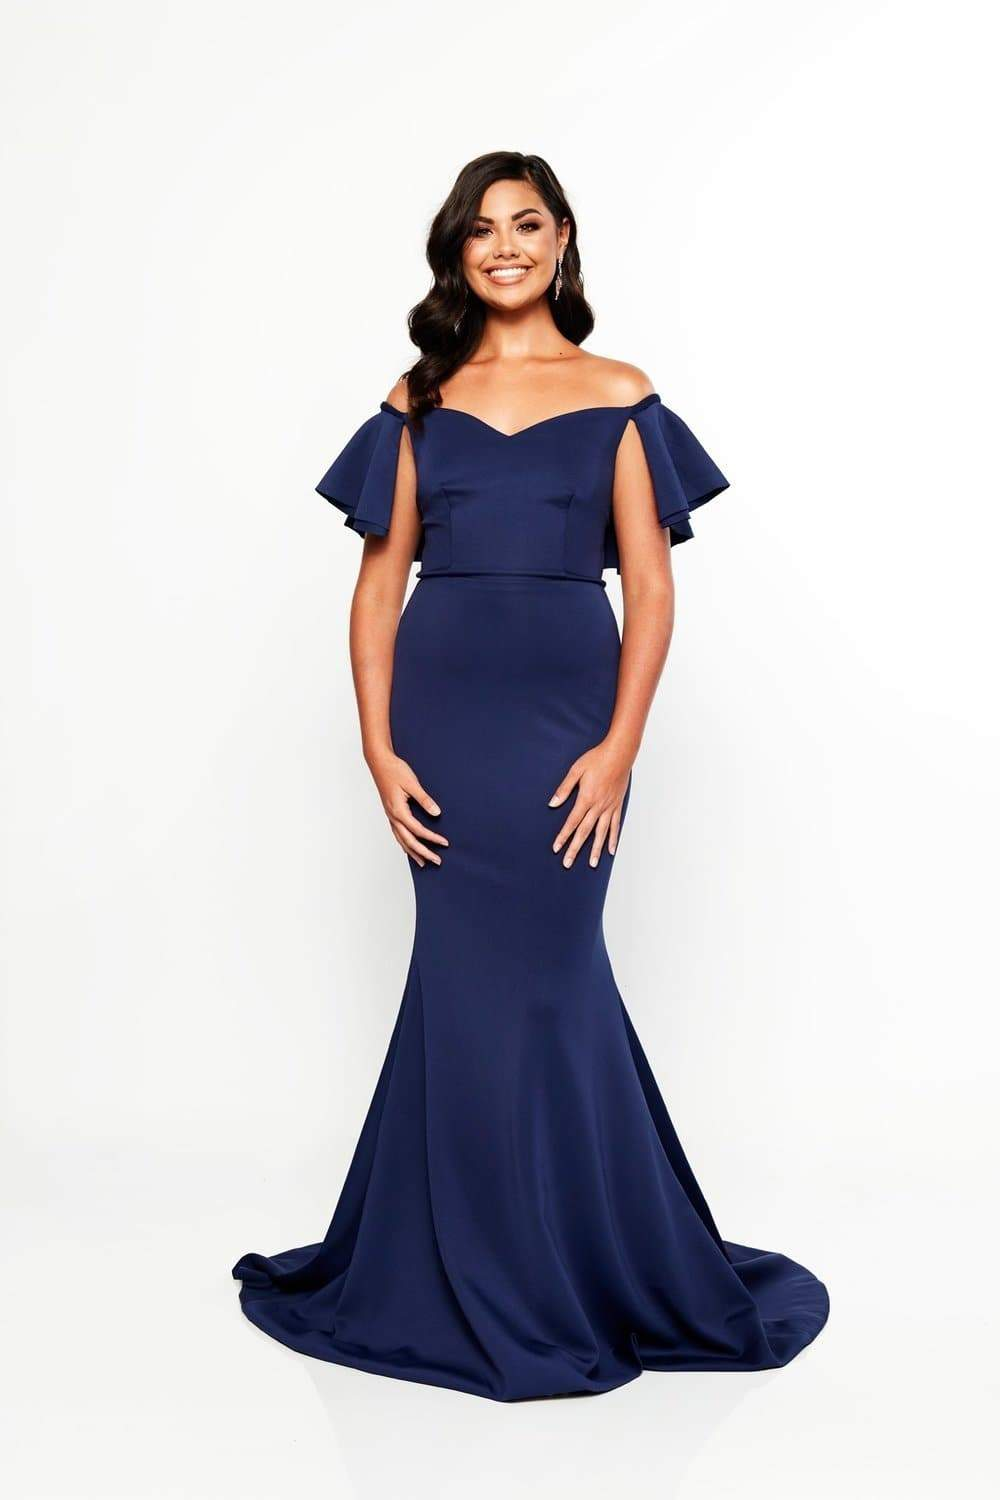 A&N Luxe Evie Gown - Navy